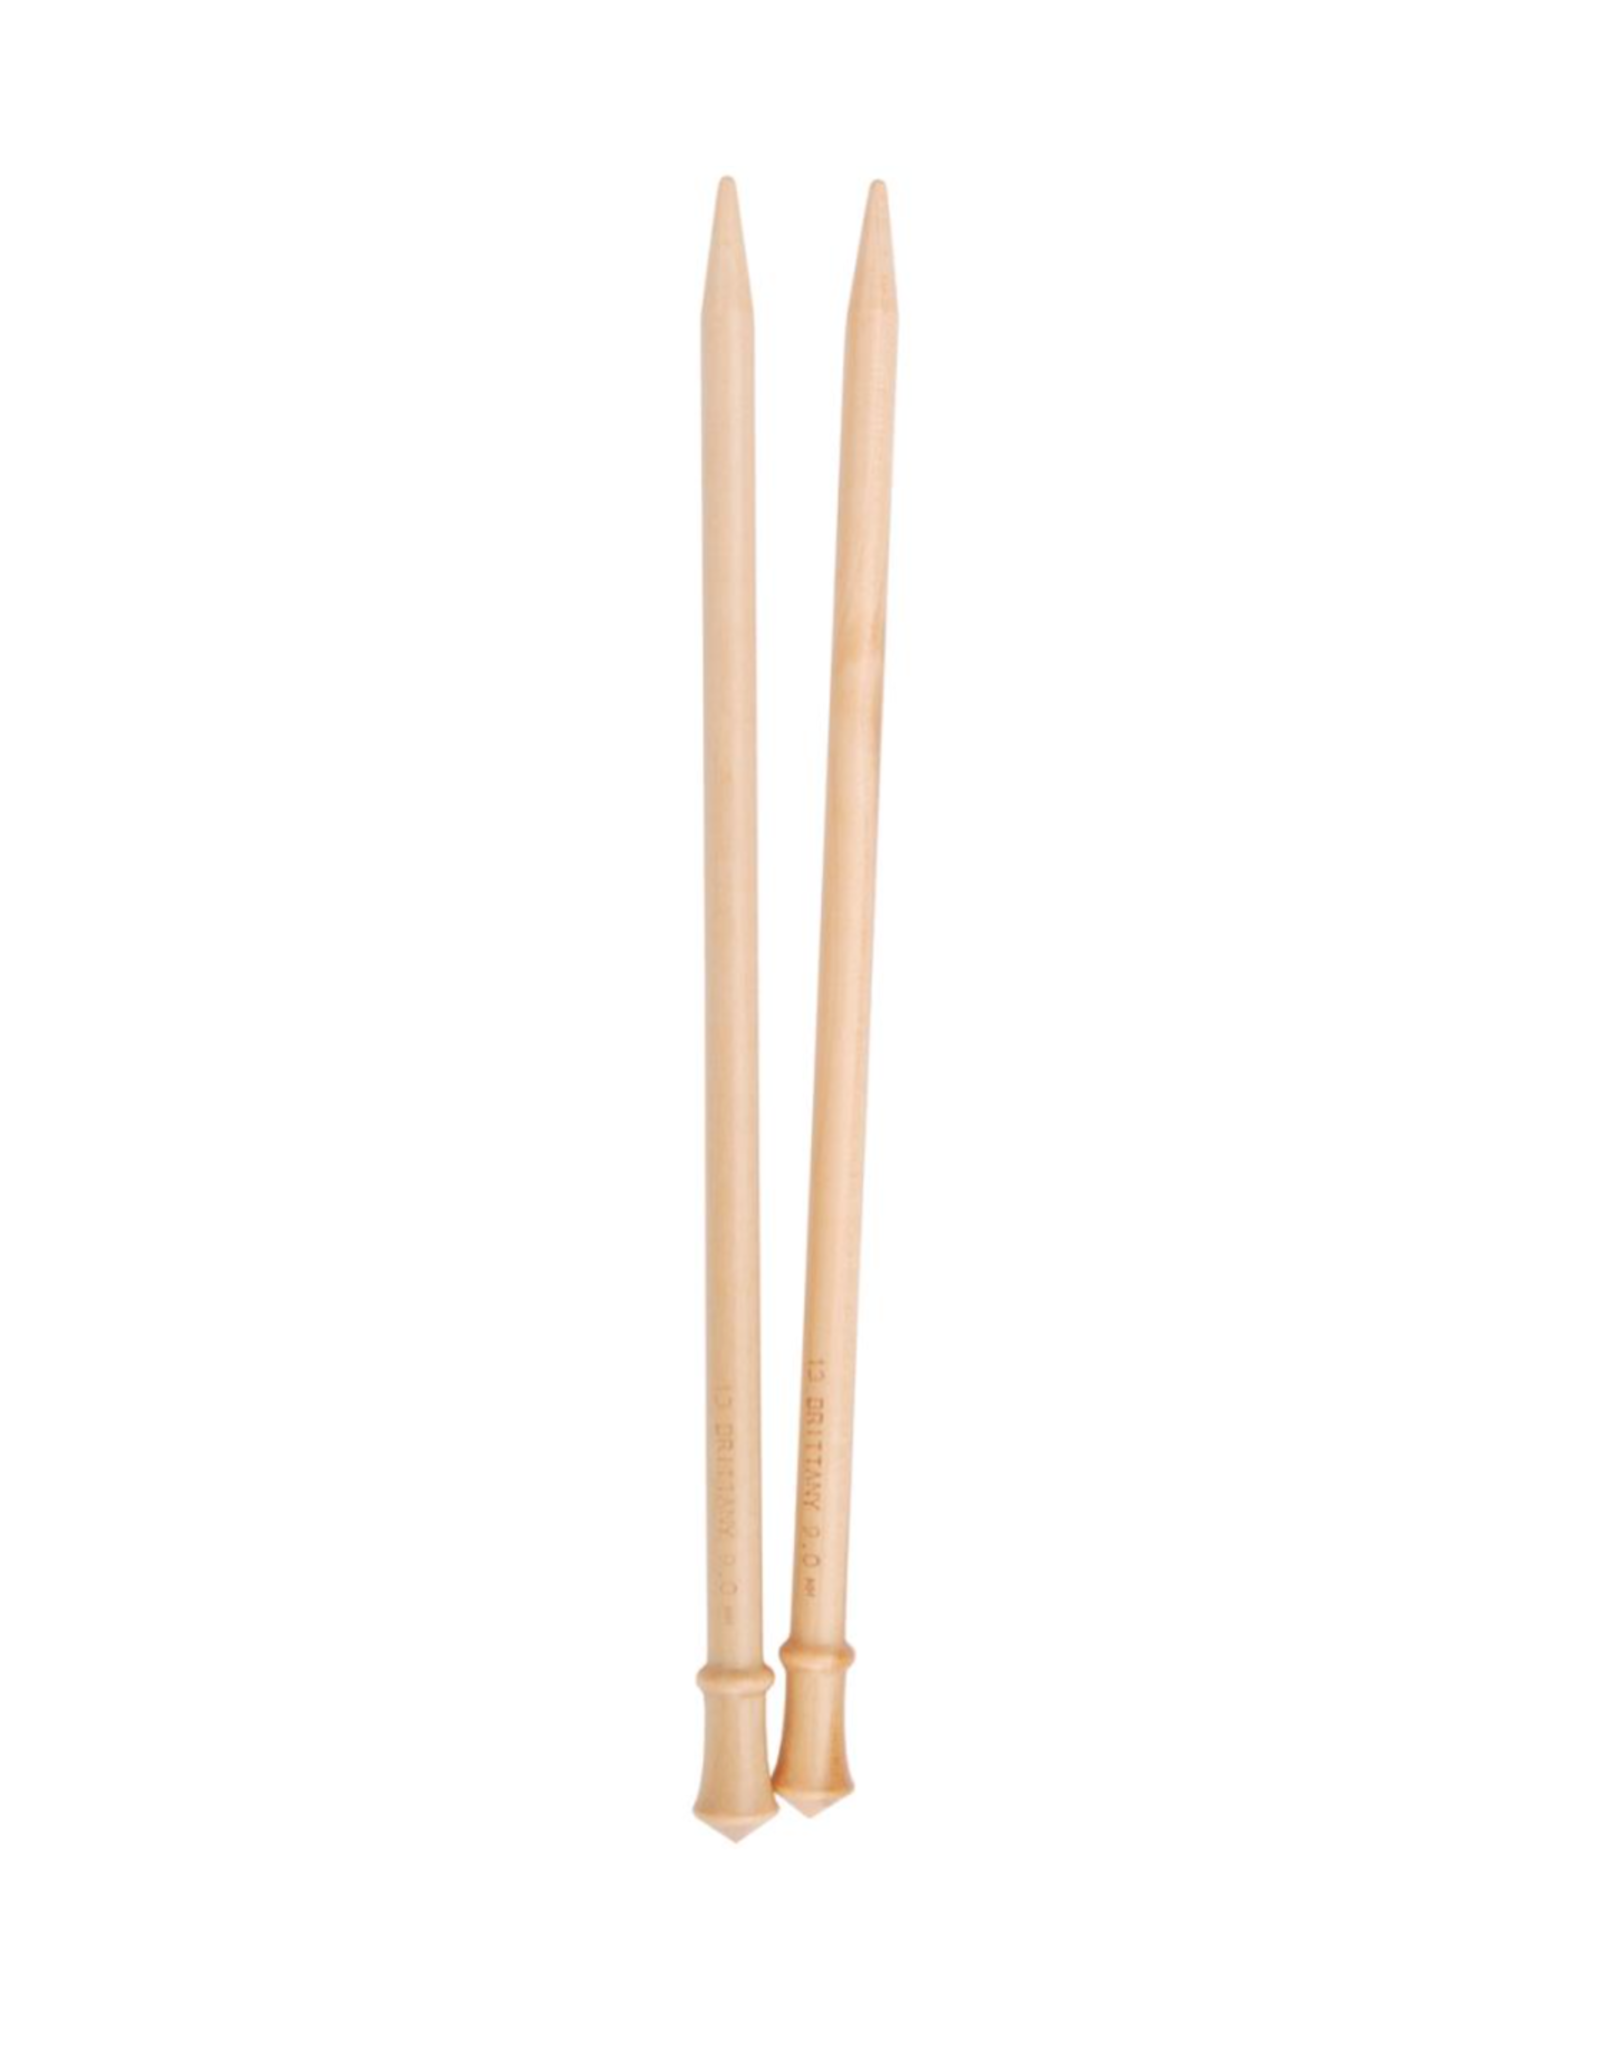 "Brittany 10"" long straight needles, size US 6"